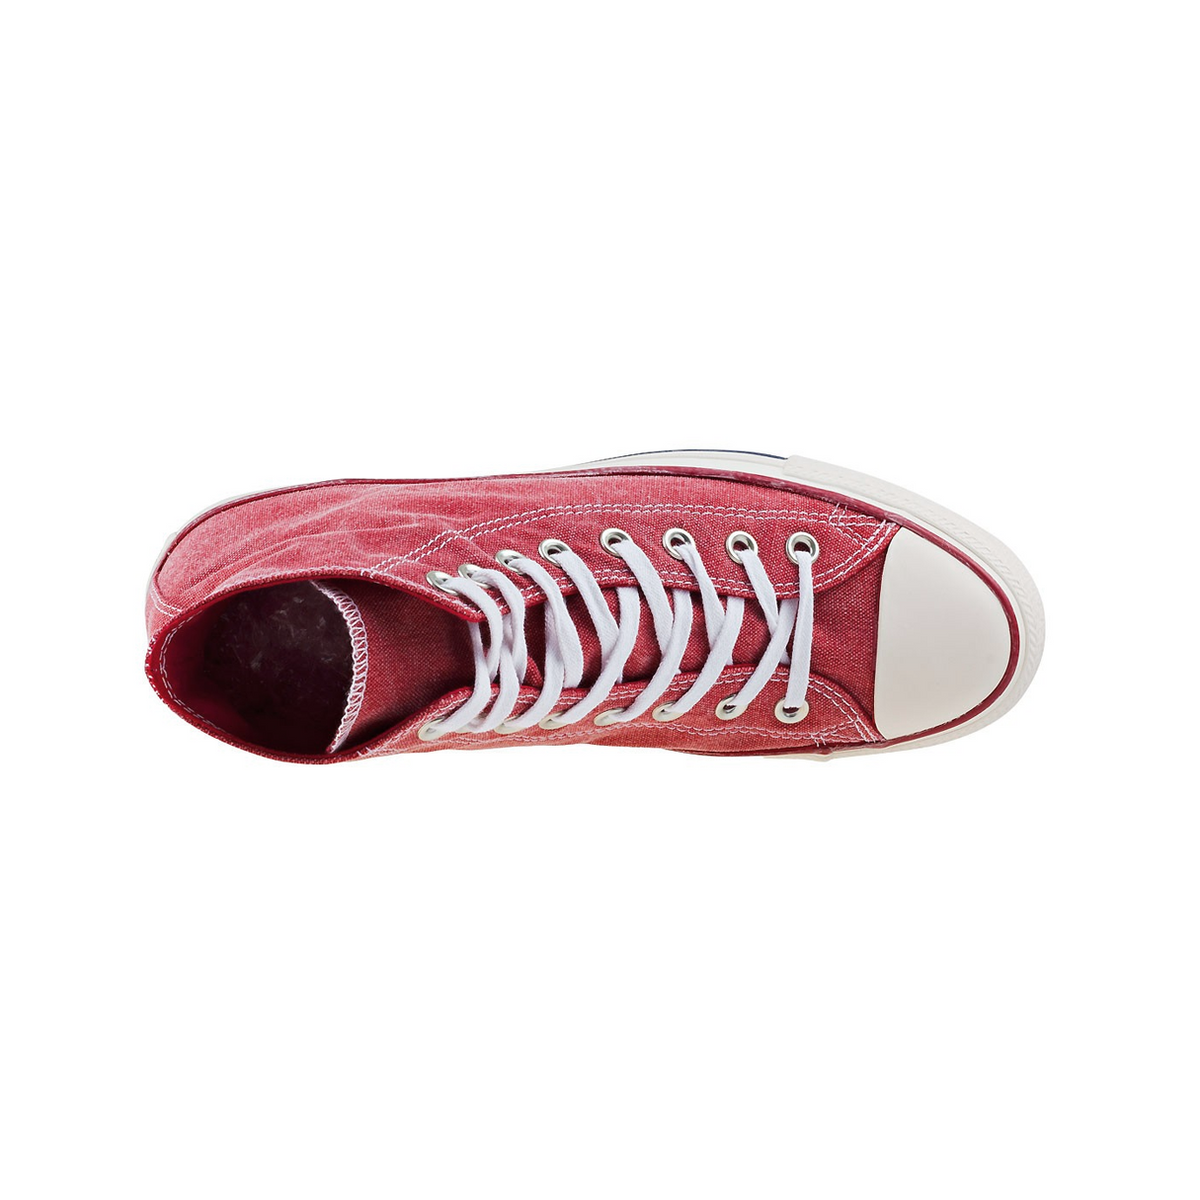 Details about Converse Chucks Ct as Hi 159538c Red